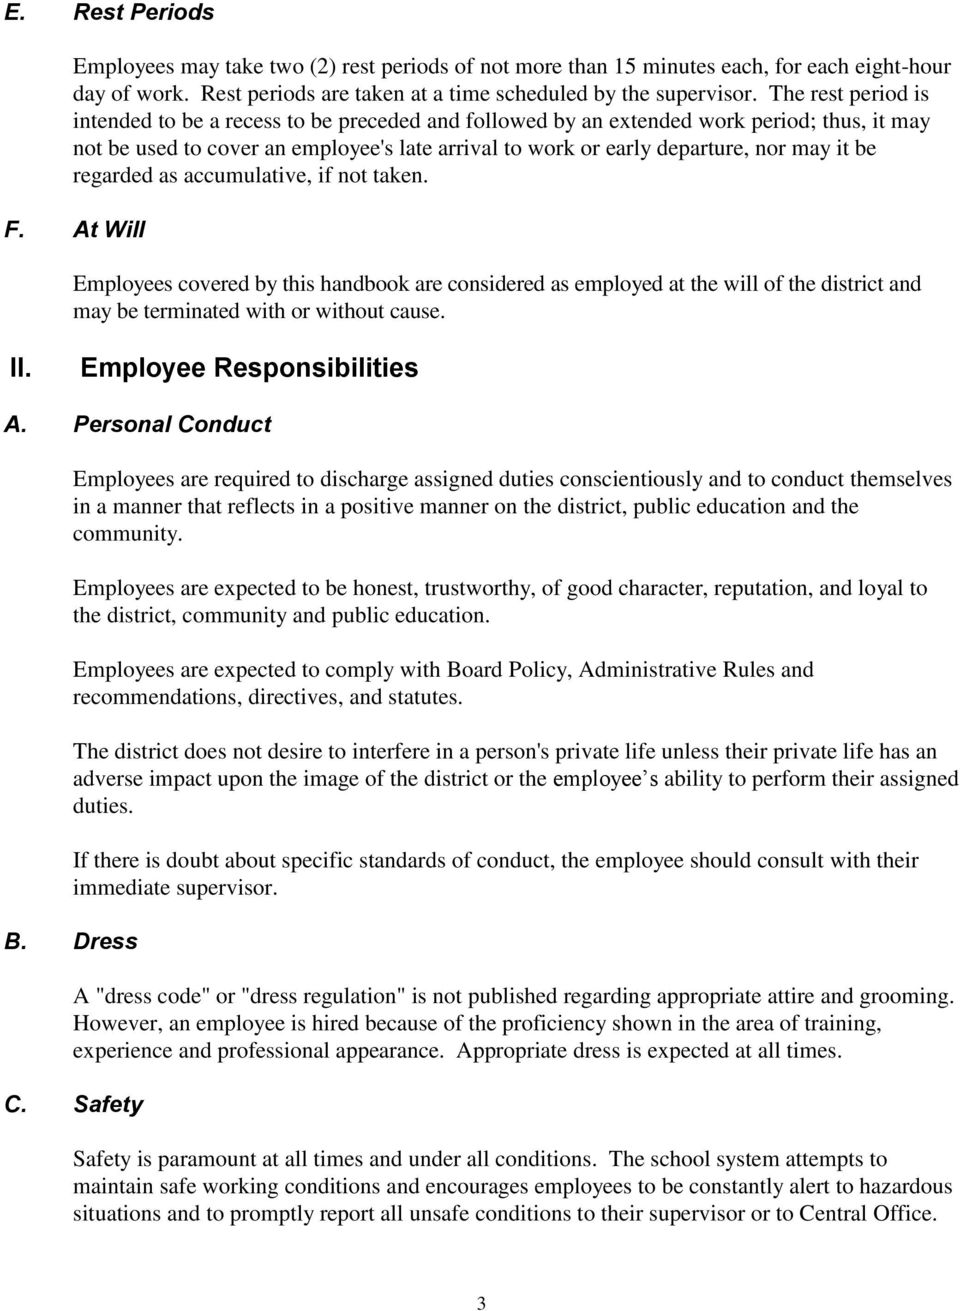 be regarded as accumulative, if not taken. F. At Will Employees covered by this handbook are considered as employed at the will of the district and may be terminated with or without cause. II.